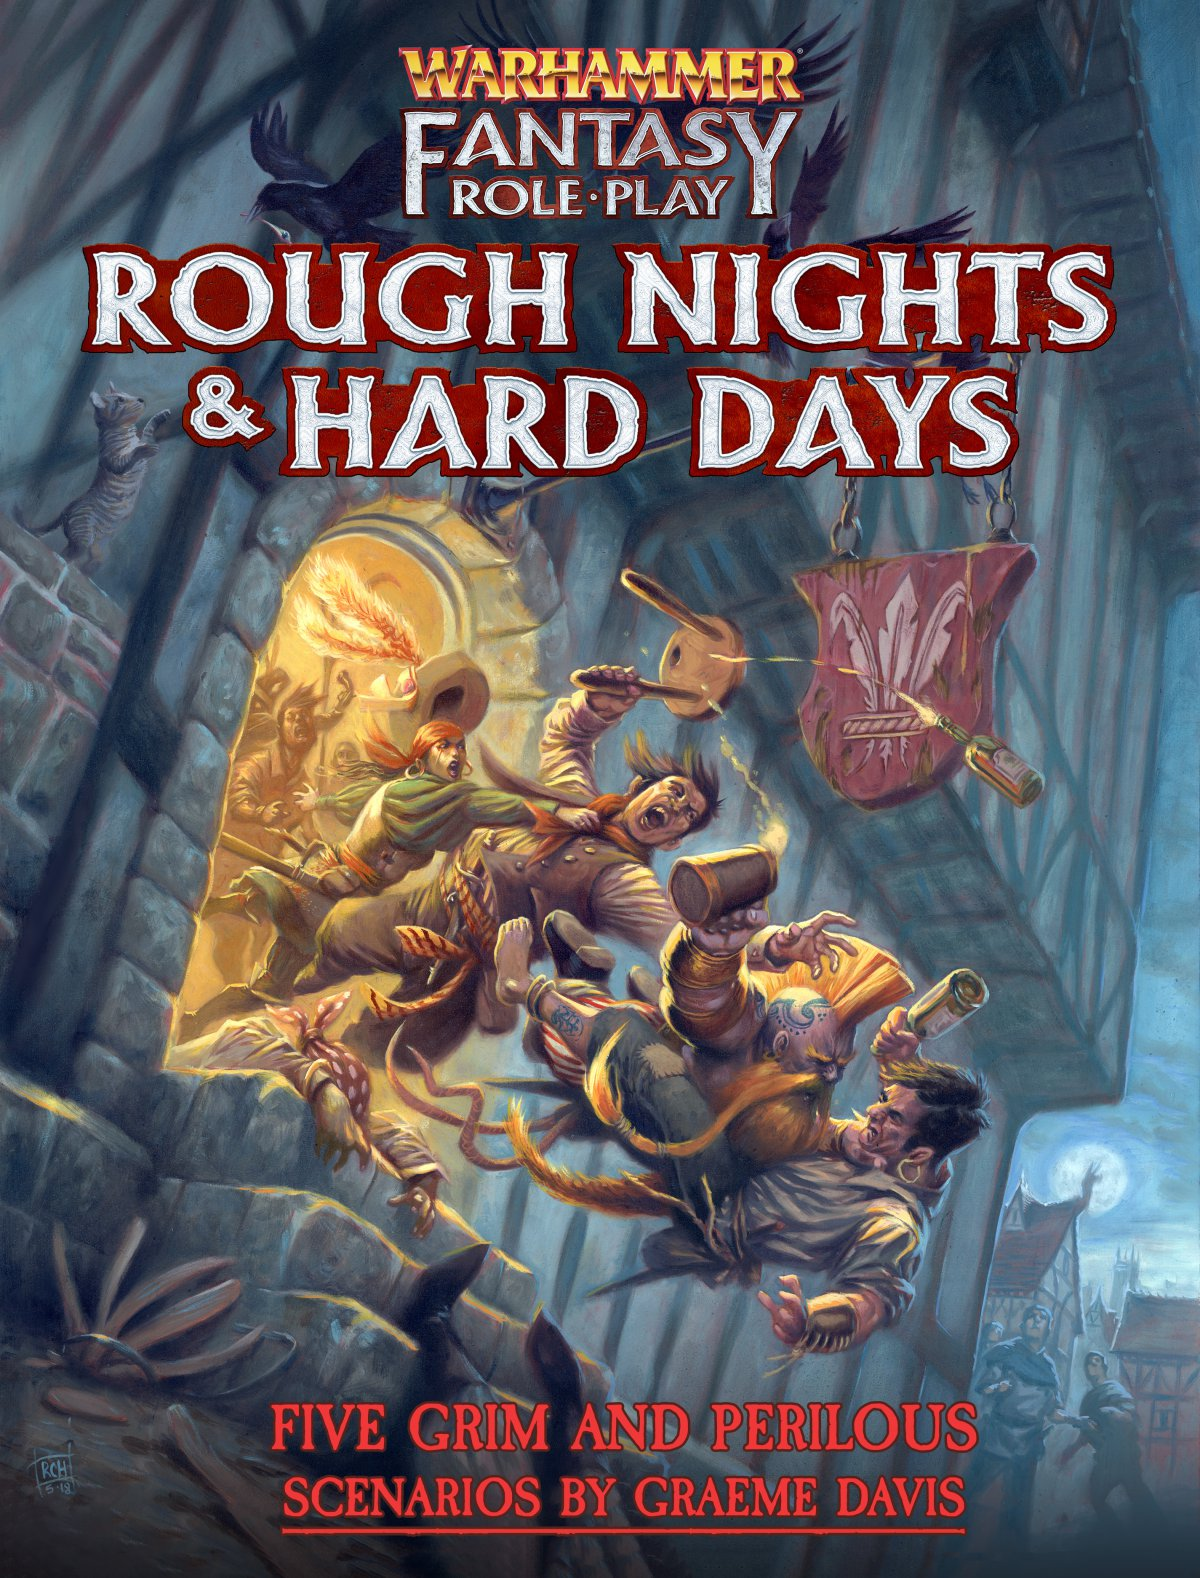 Pre-Order WFRP Rough Nights & Hard Days Now!